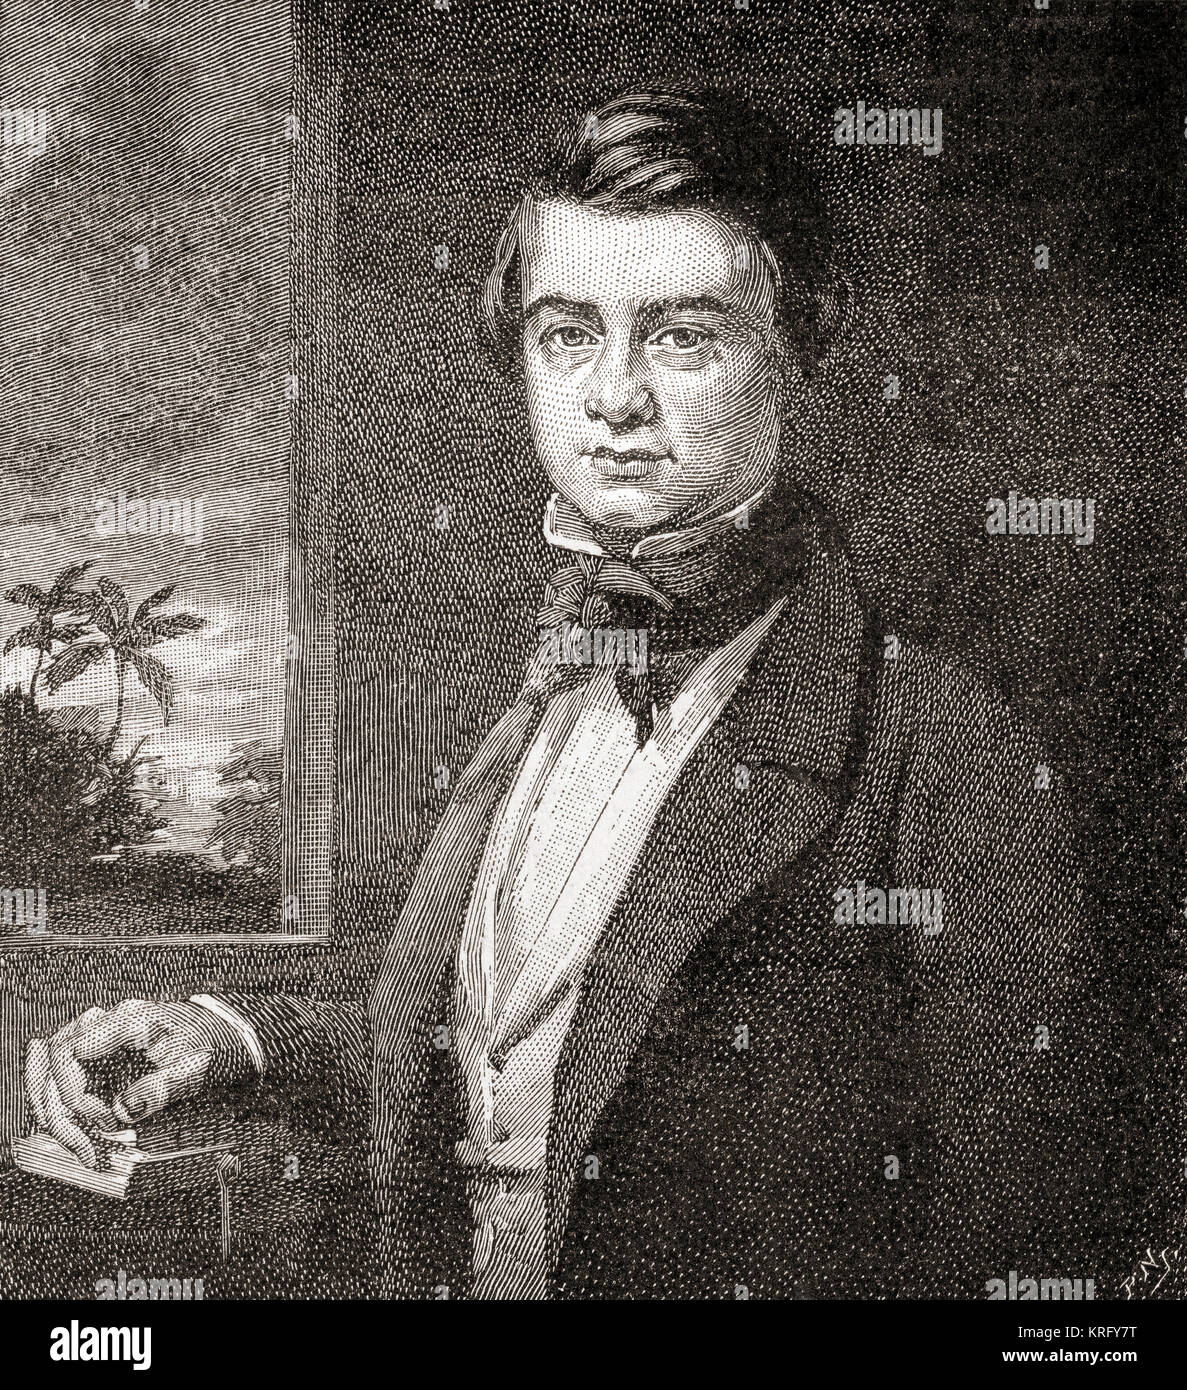 Sir Richard Temple II, 1st Baronet, 1826 – 1902. Seen here aged 20. Administrator in British India and a British - Stock Image